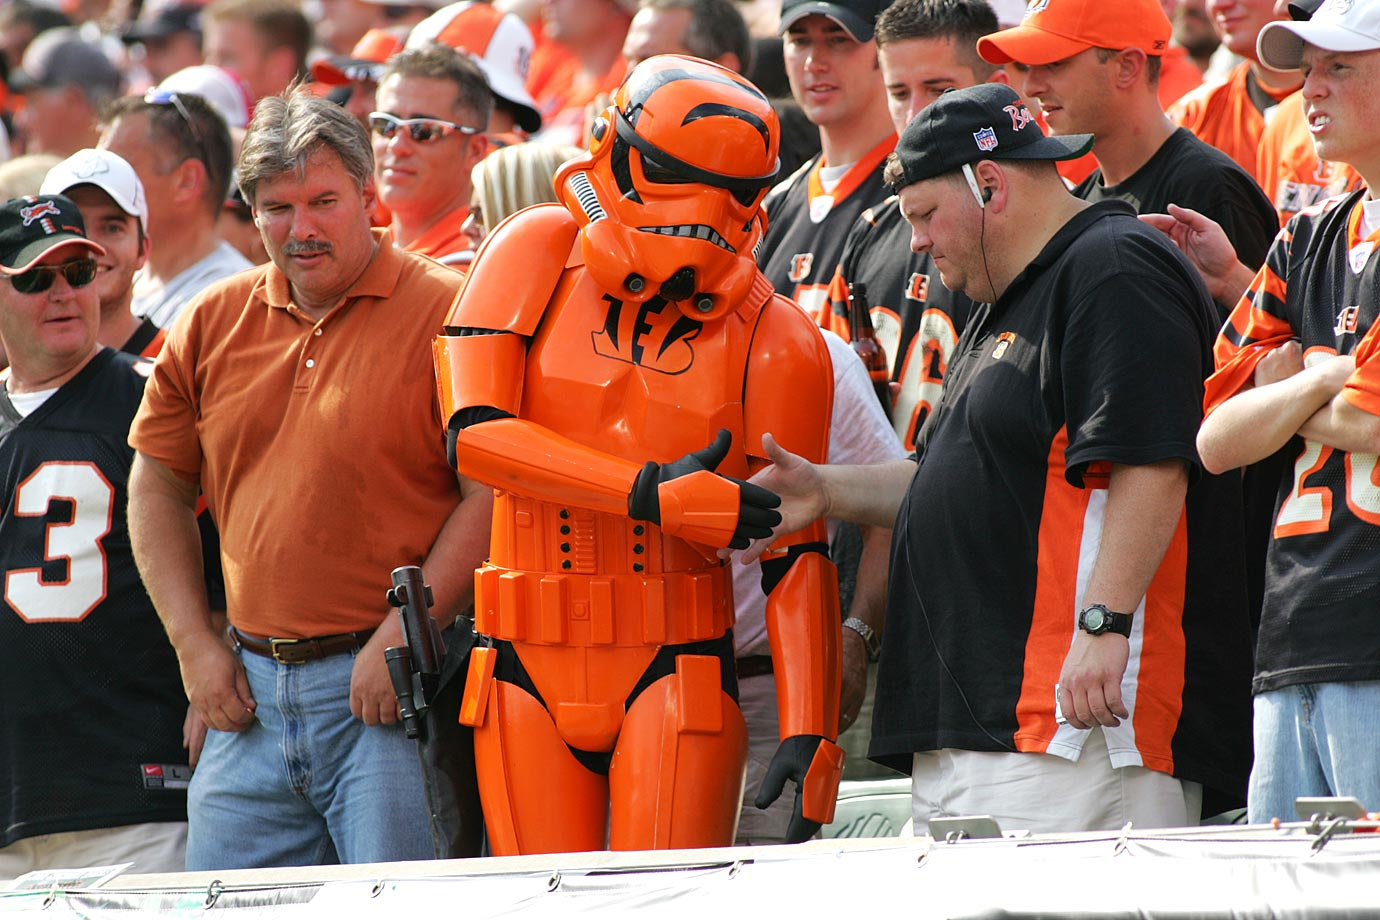 A Cincinnati Bengals fan dresses as a stormtrooper during the Bengals game against the Houston Texans on Oct. 2, 2005 at Paul Brown Stadium in Cincinnati.